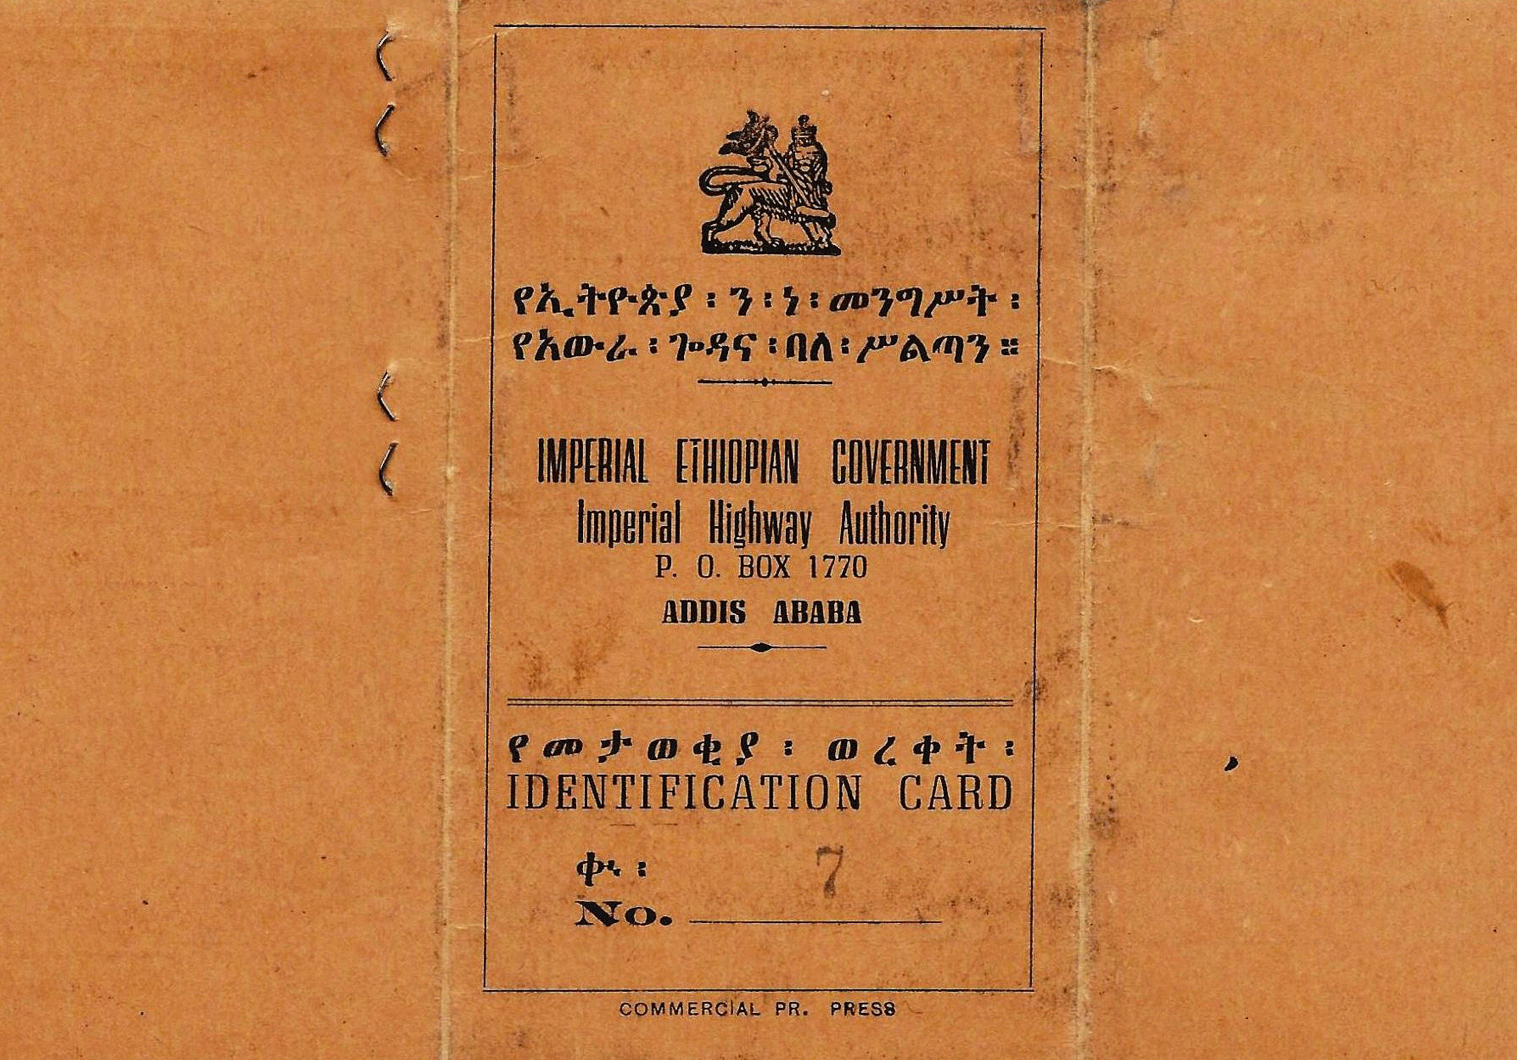 Imperial Ethiopian Government papers.